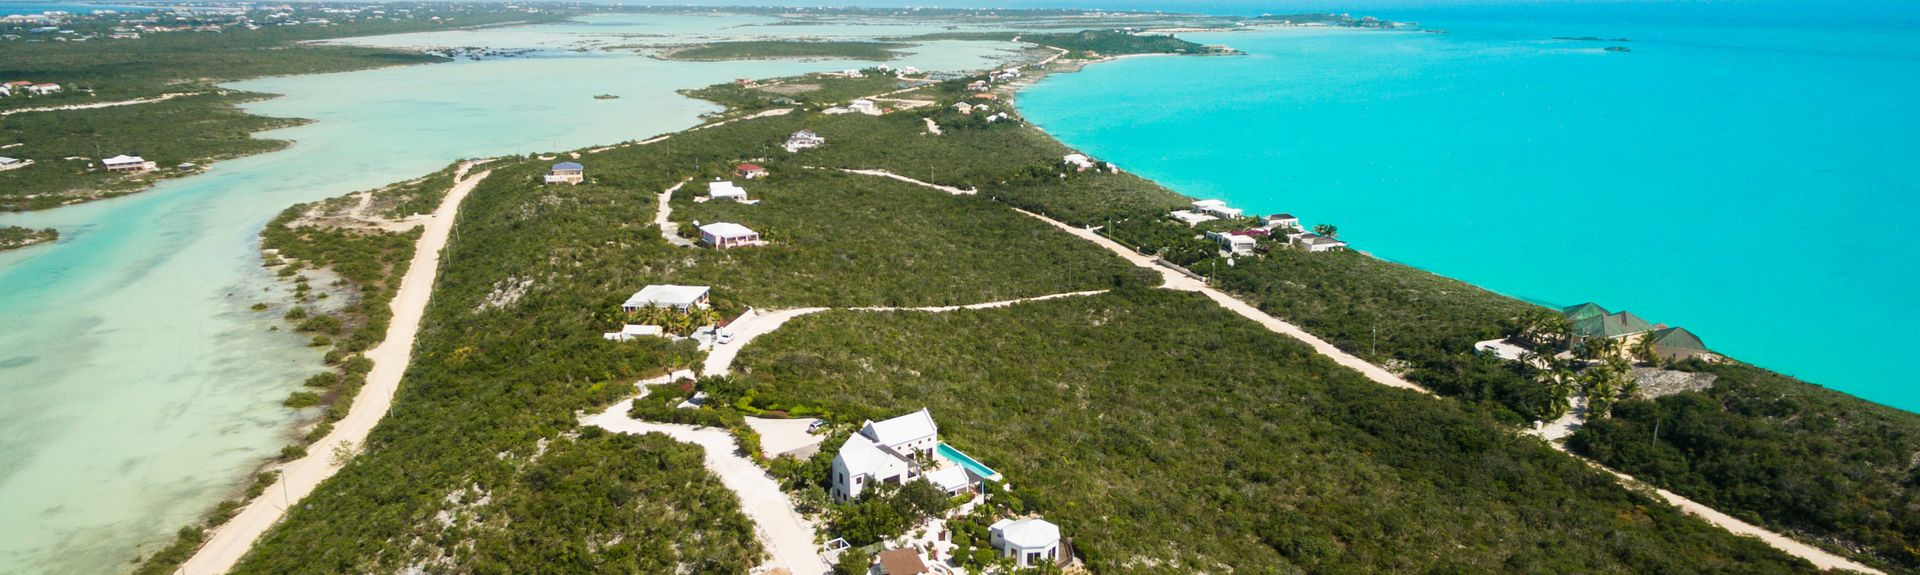 The Hole, Providenciales, Turks and Caicos